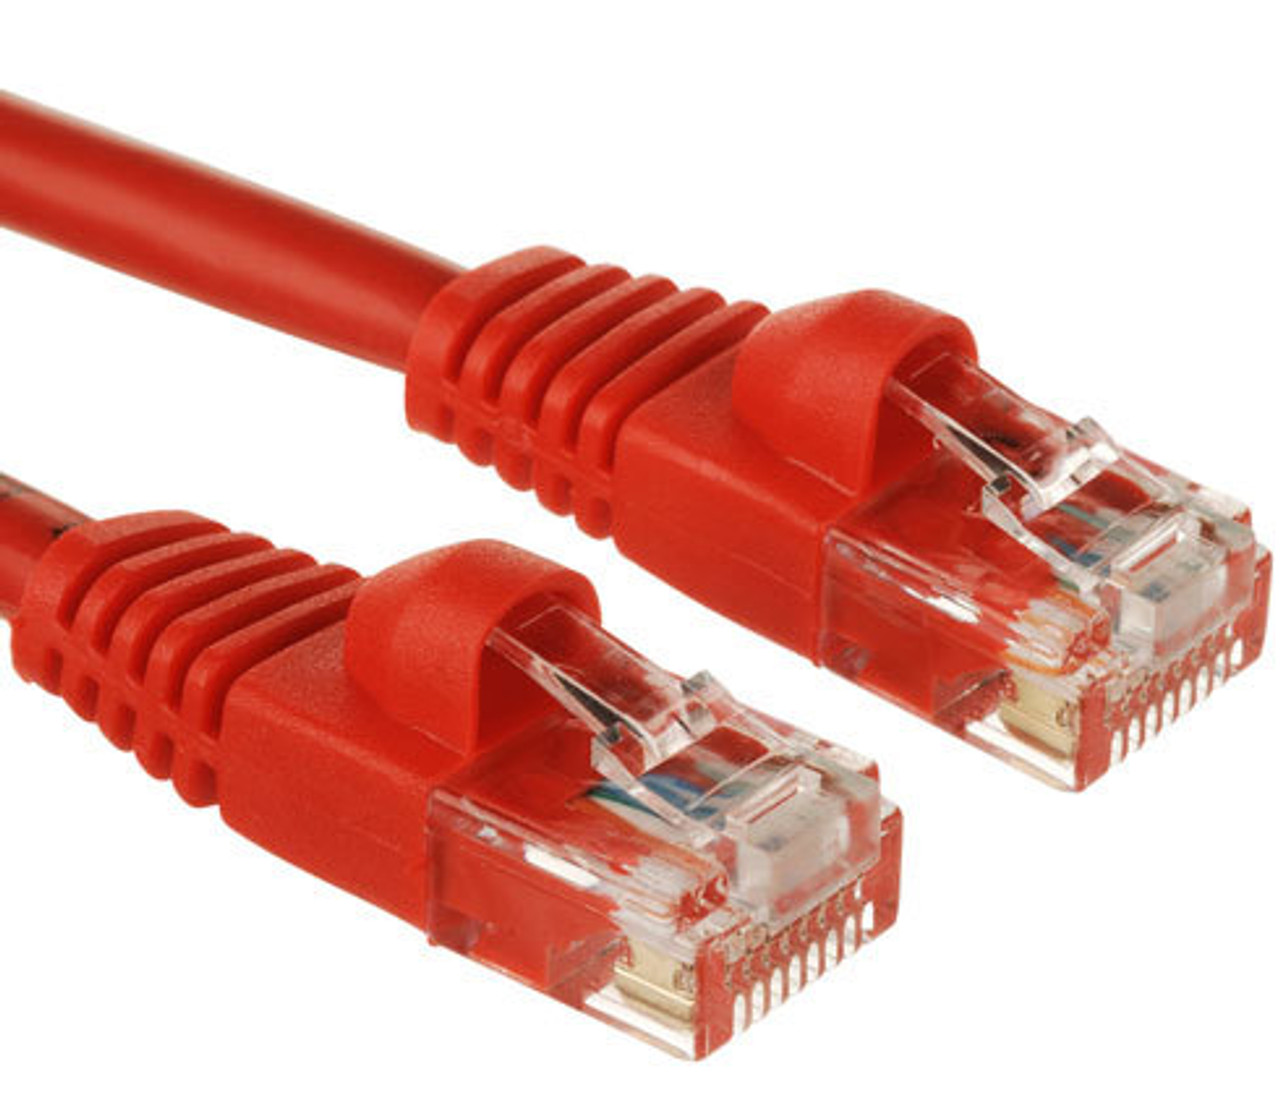 Product image for CAT5e PATCH CORD  5M RED Network Cable 31984   CX Computer Superstore